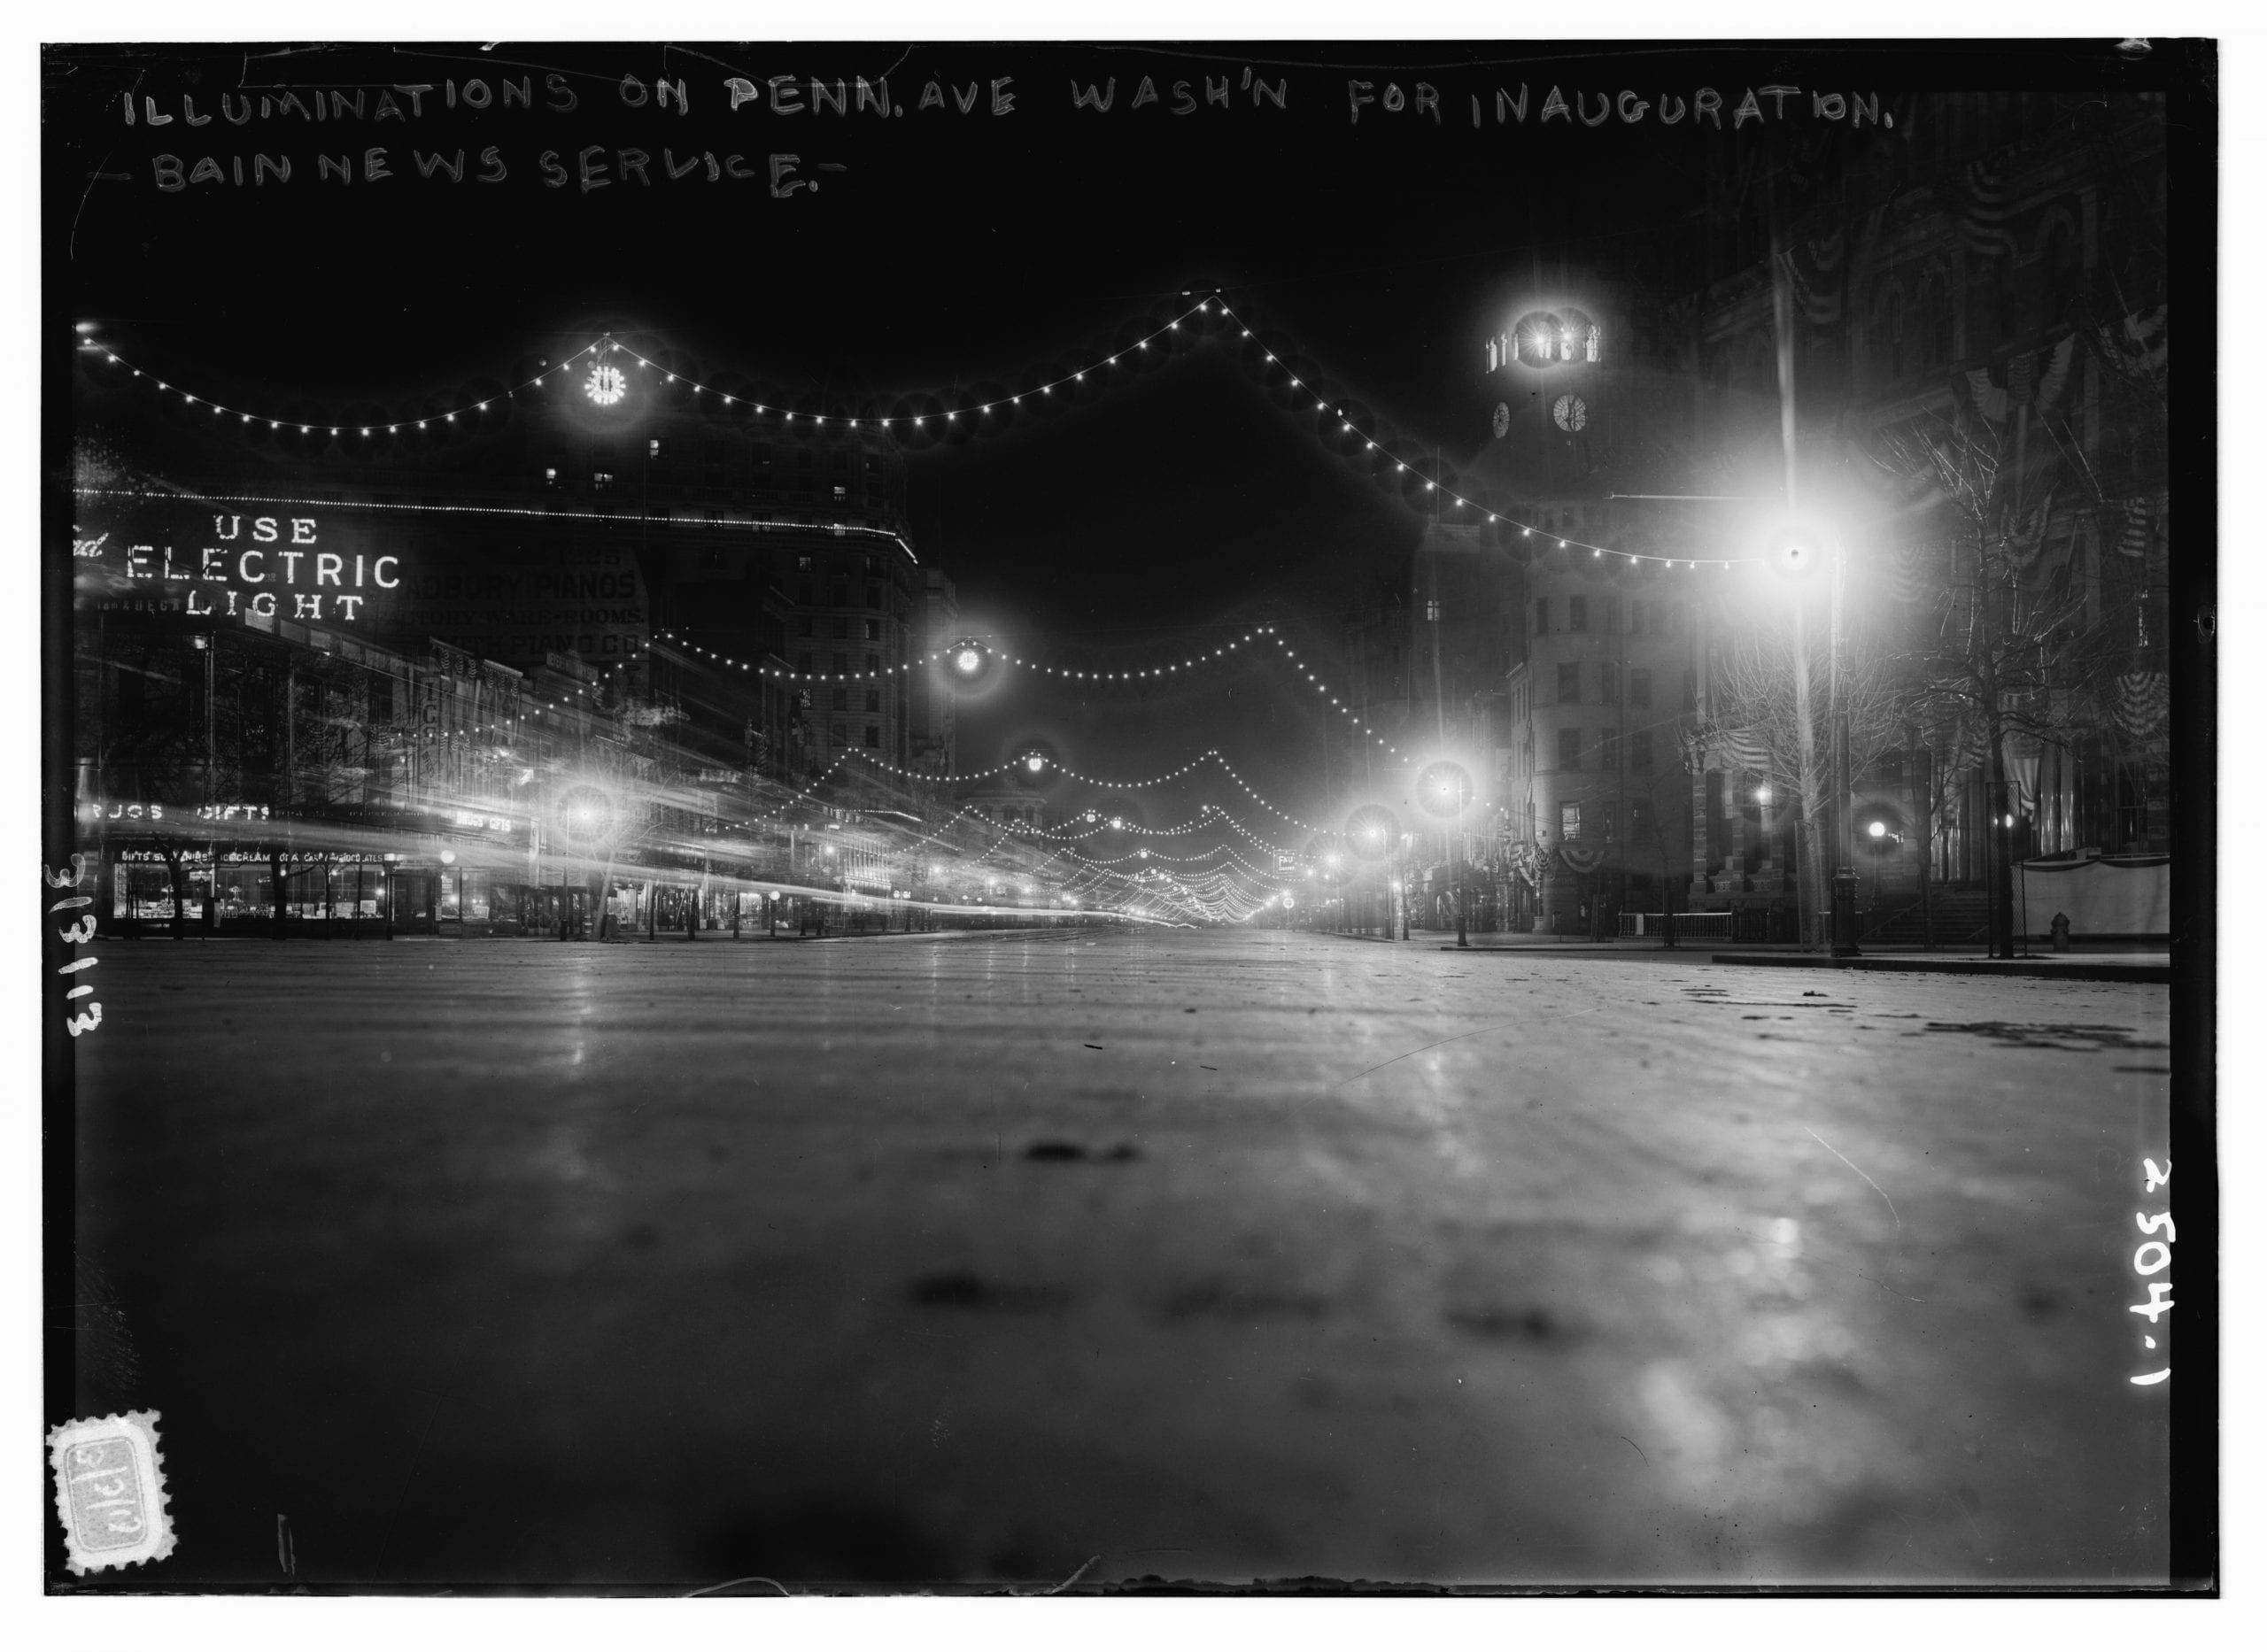 Photo shows night view of Pennsylvania Avenue in Washington, D.C., decorated with electric lights for the first inauguration of President Woodrow Wilson. (Source: Flickr Commons project, 2008)